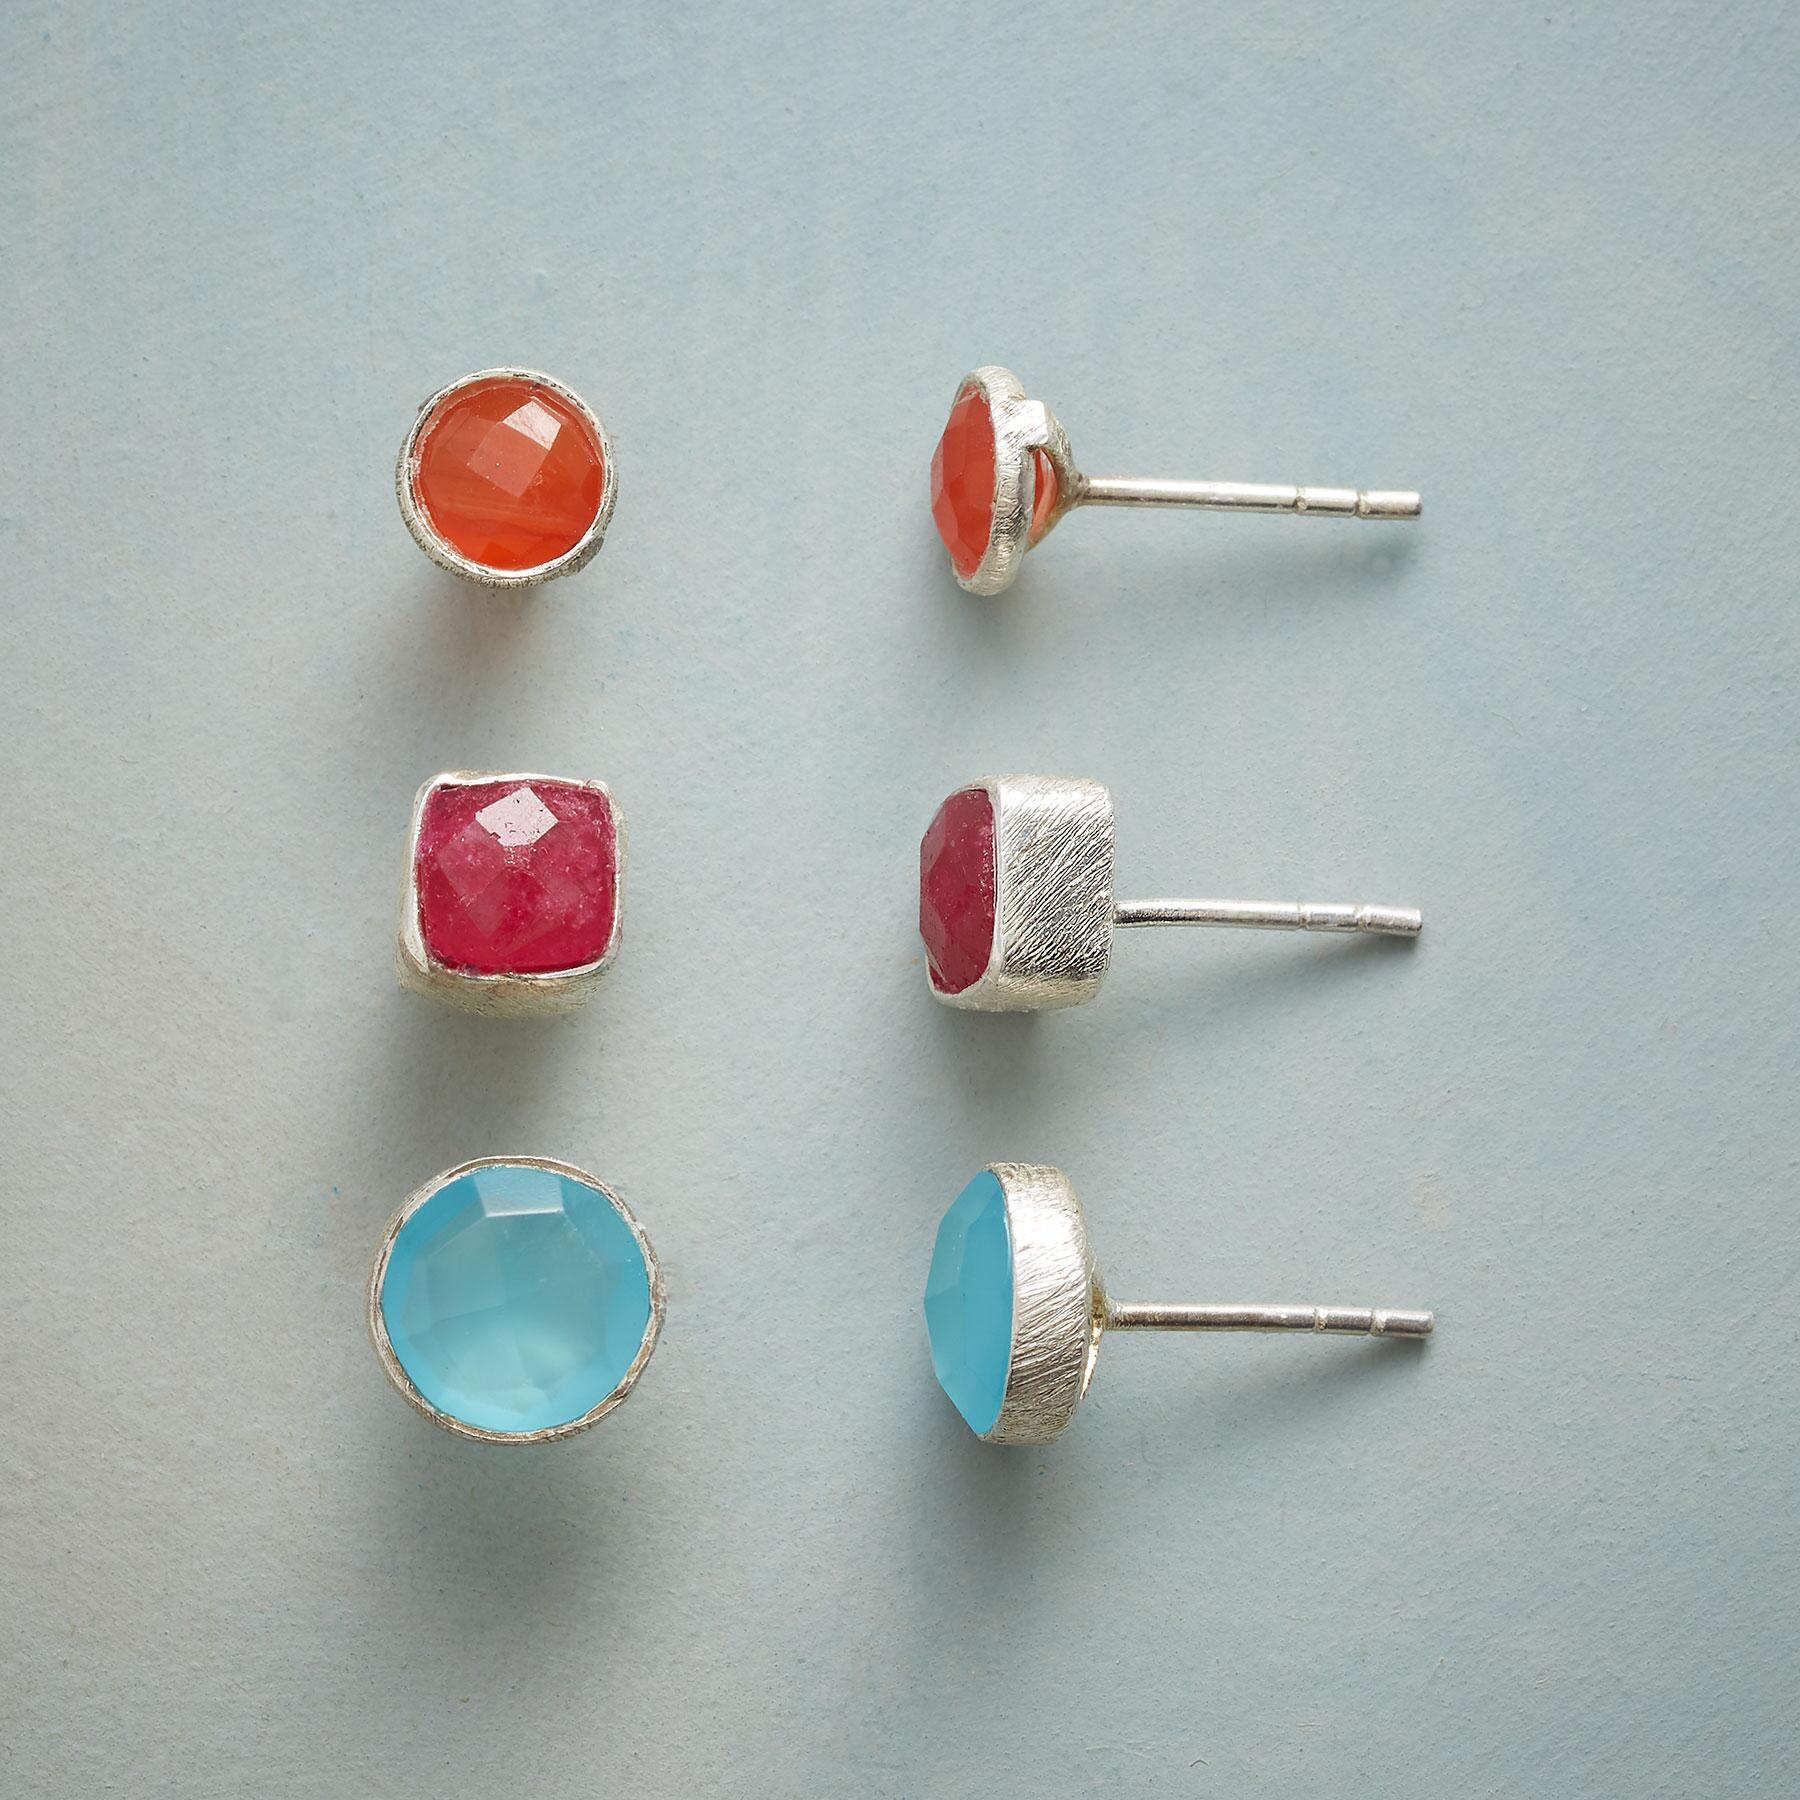 MOOD MAKER EARRING TRIO: View 1